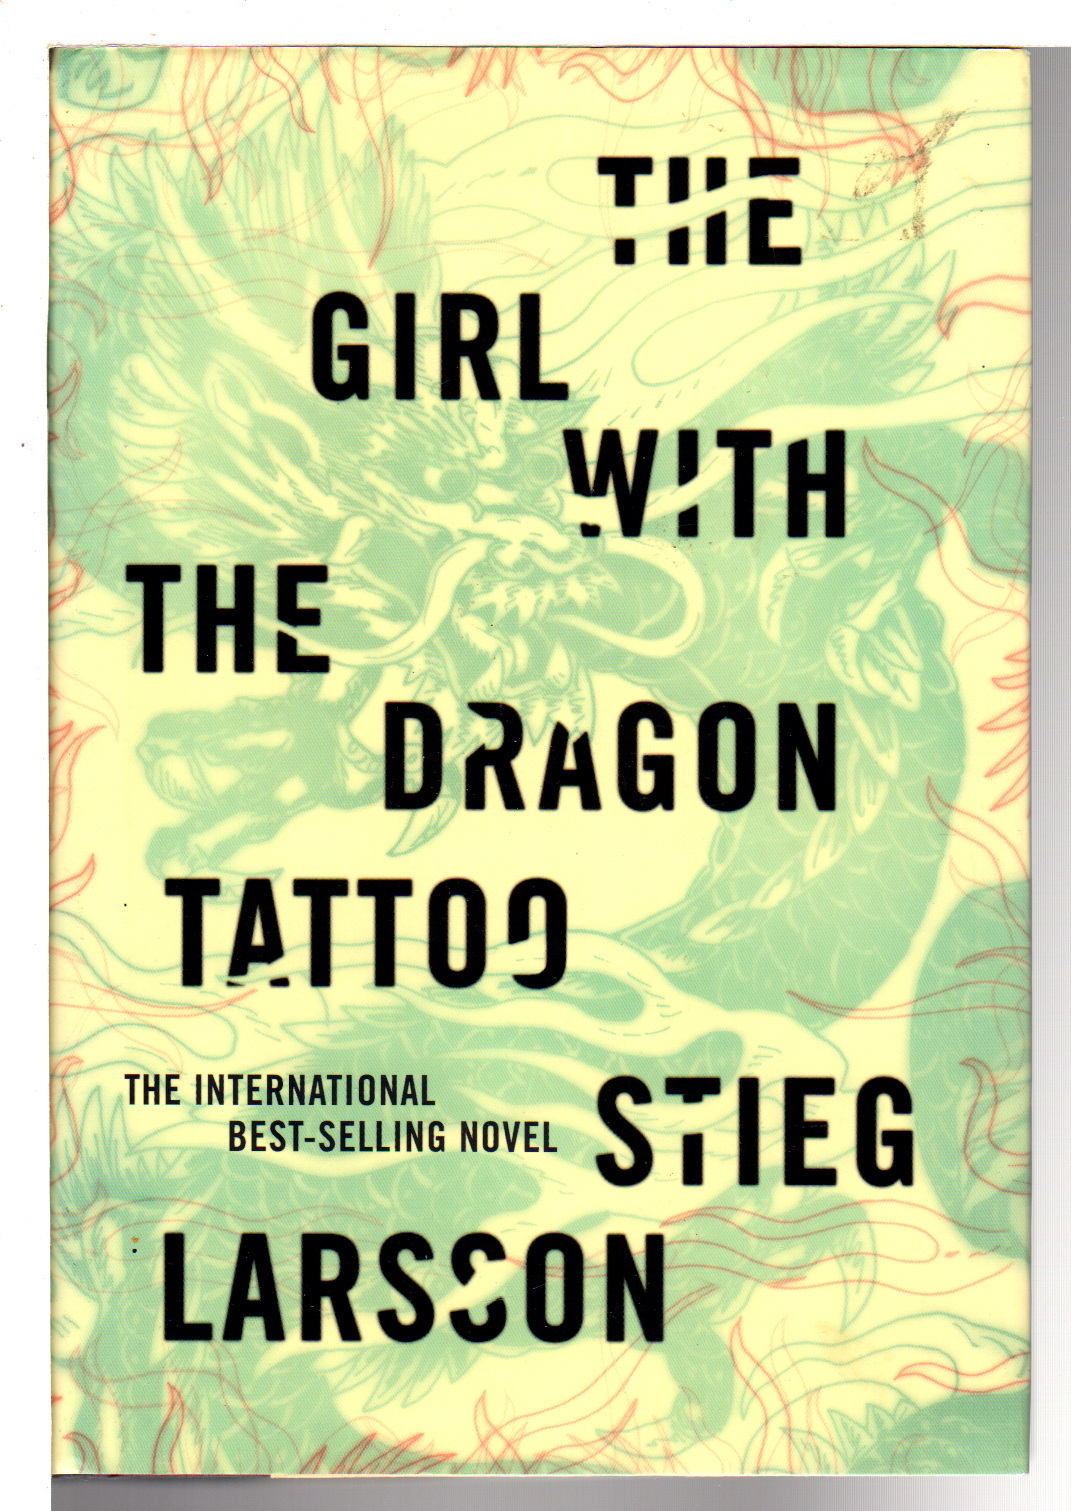 LARSSON, STIEG. - THE GIRL WITH THE DRAGON TATTOO.